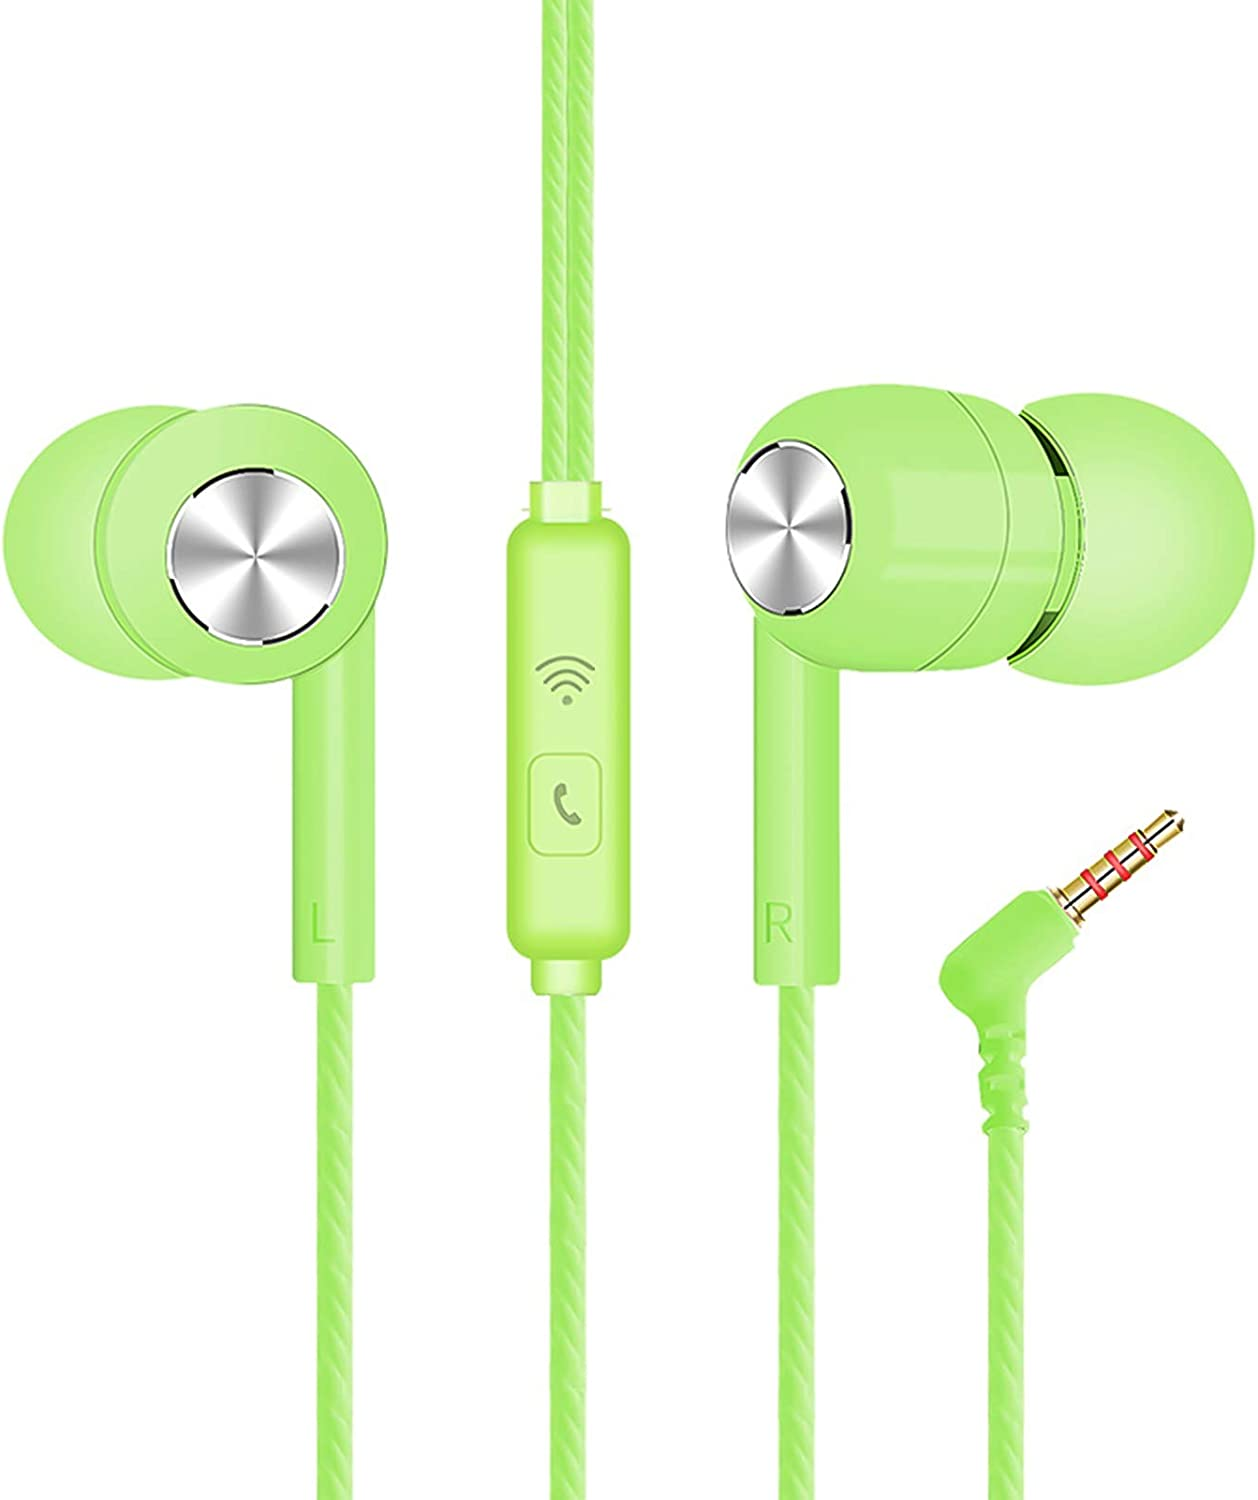 LUYANhapy9 Plug Wired Earphone,S32 Universal 3.5mm L-Shaped Earbuds Headphones Compatible with iPhone and Android Smartphones,iPod,iPad, MP3 Players,Fits All 3.5mm Interface Green One Size